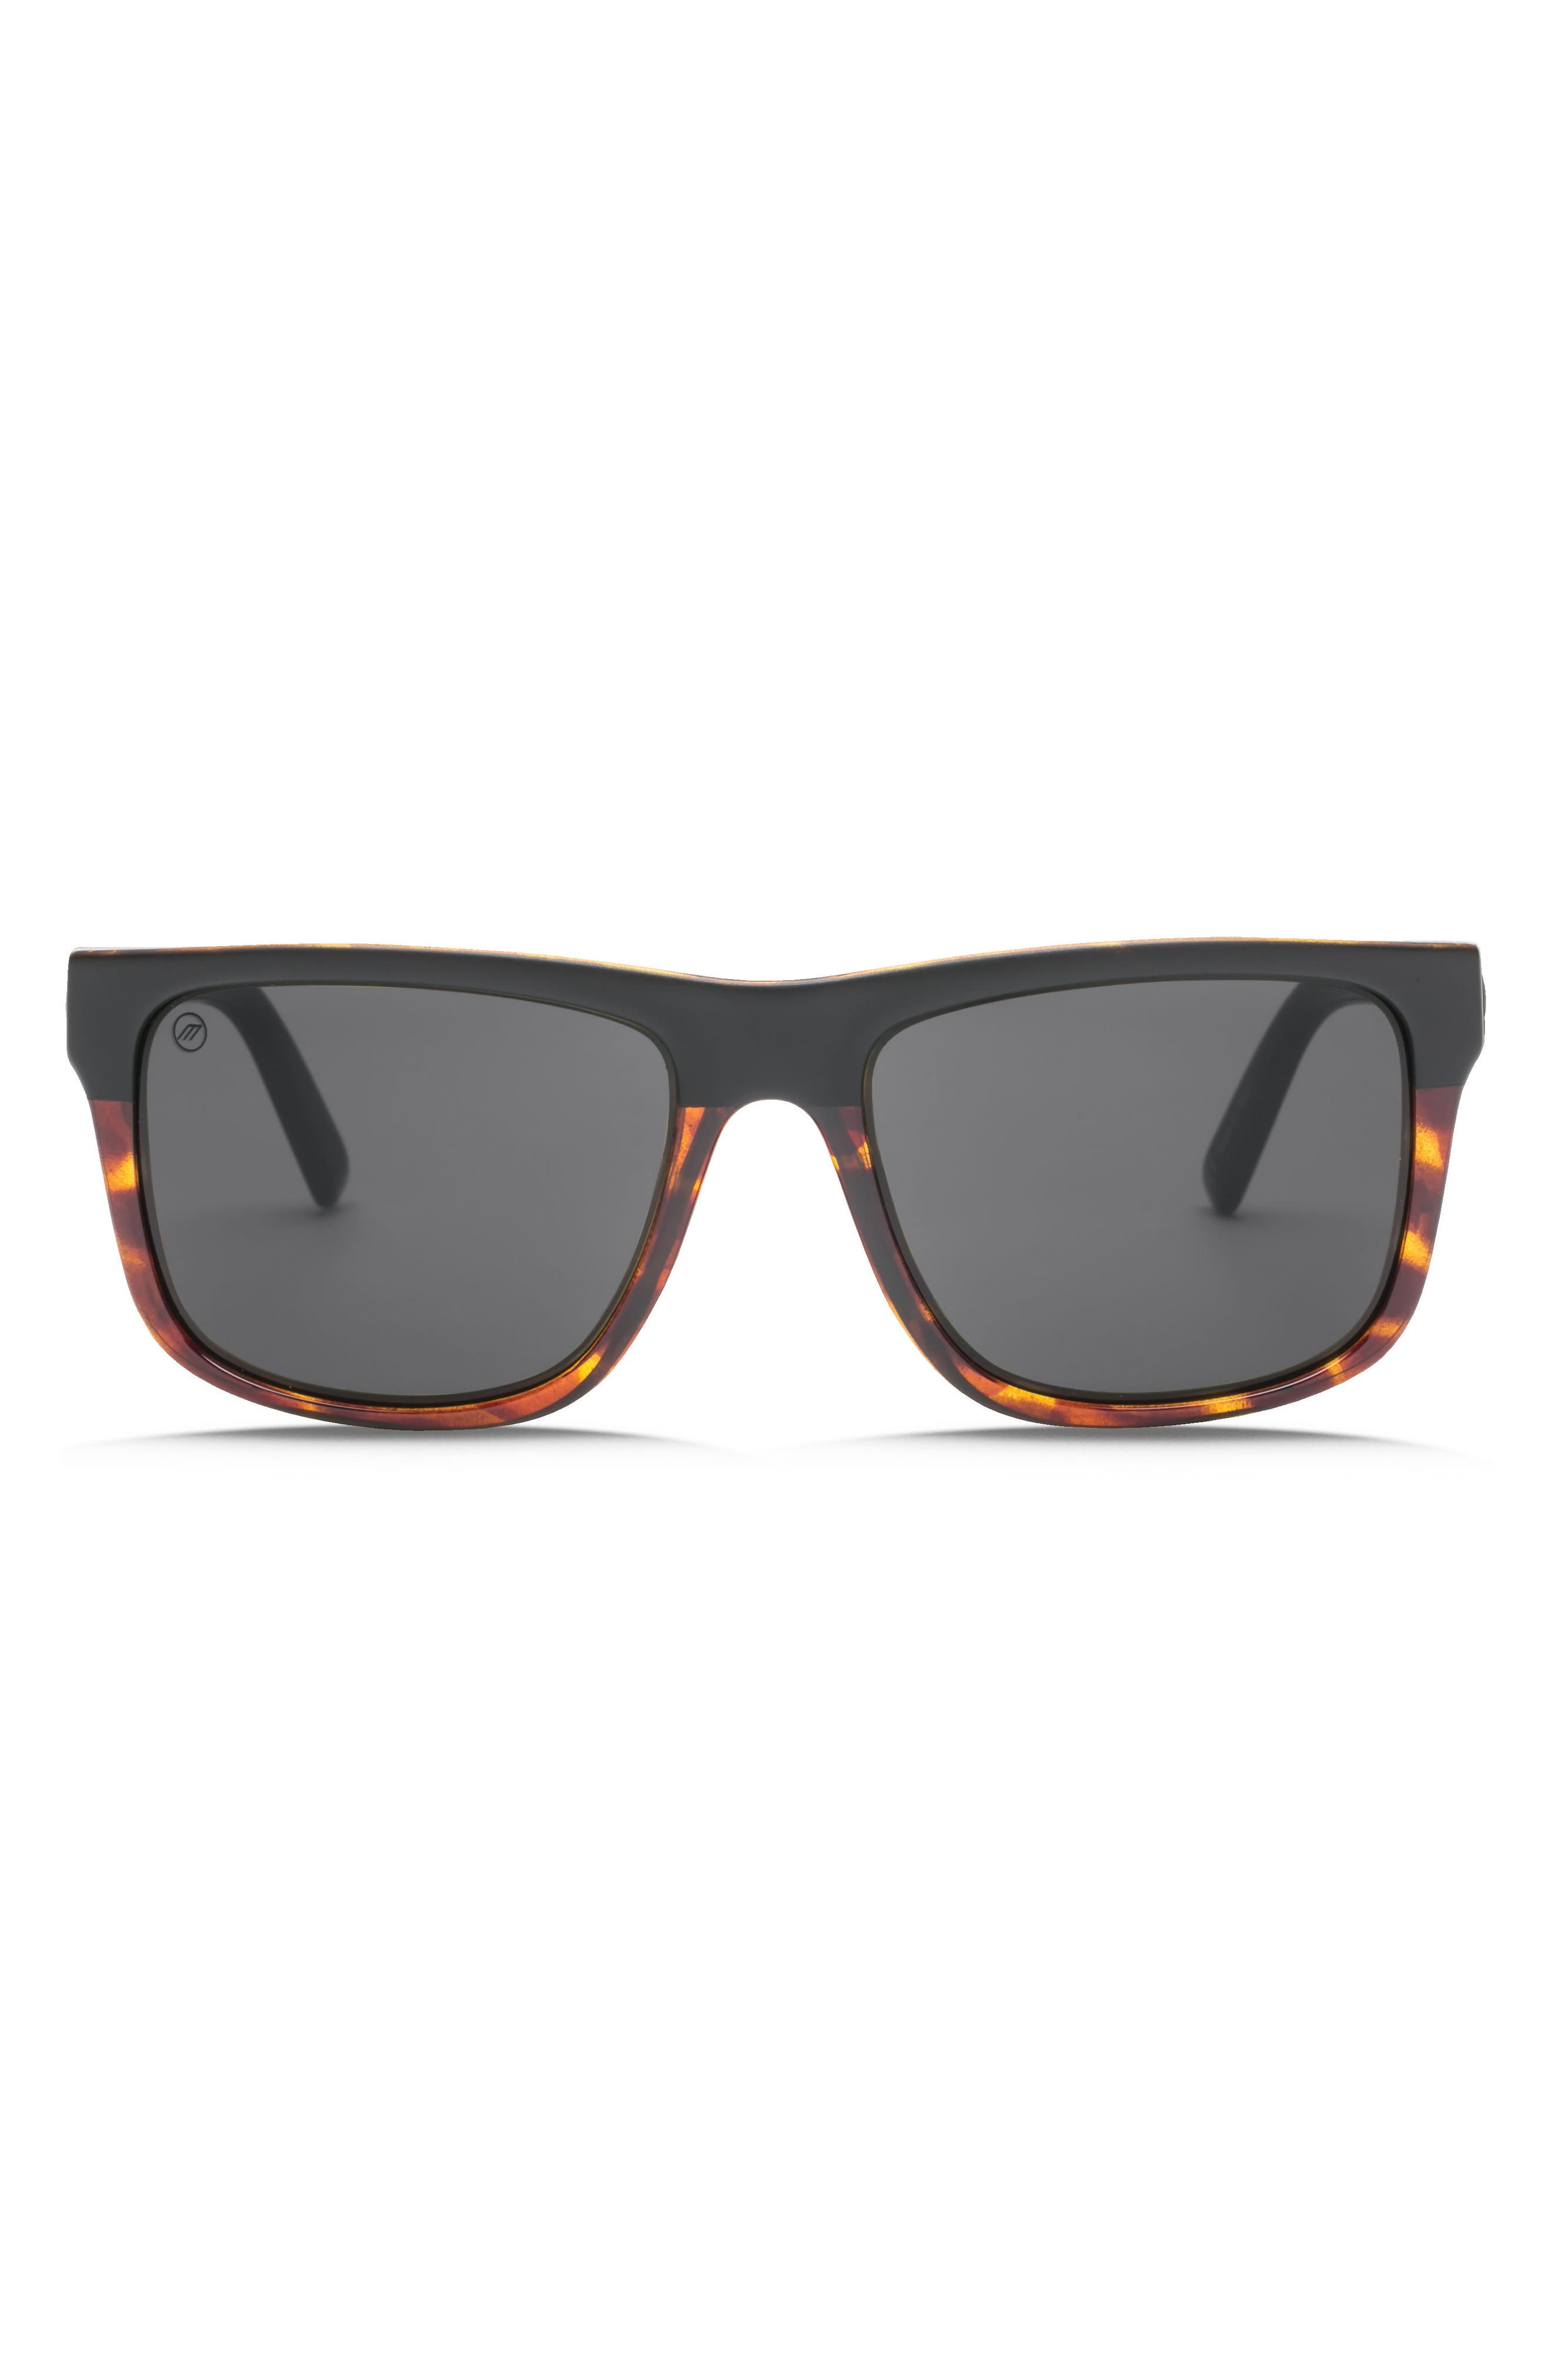 Main Image - ELECTRIC Swingarm XL 59mm Sunglasses